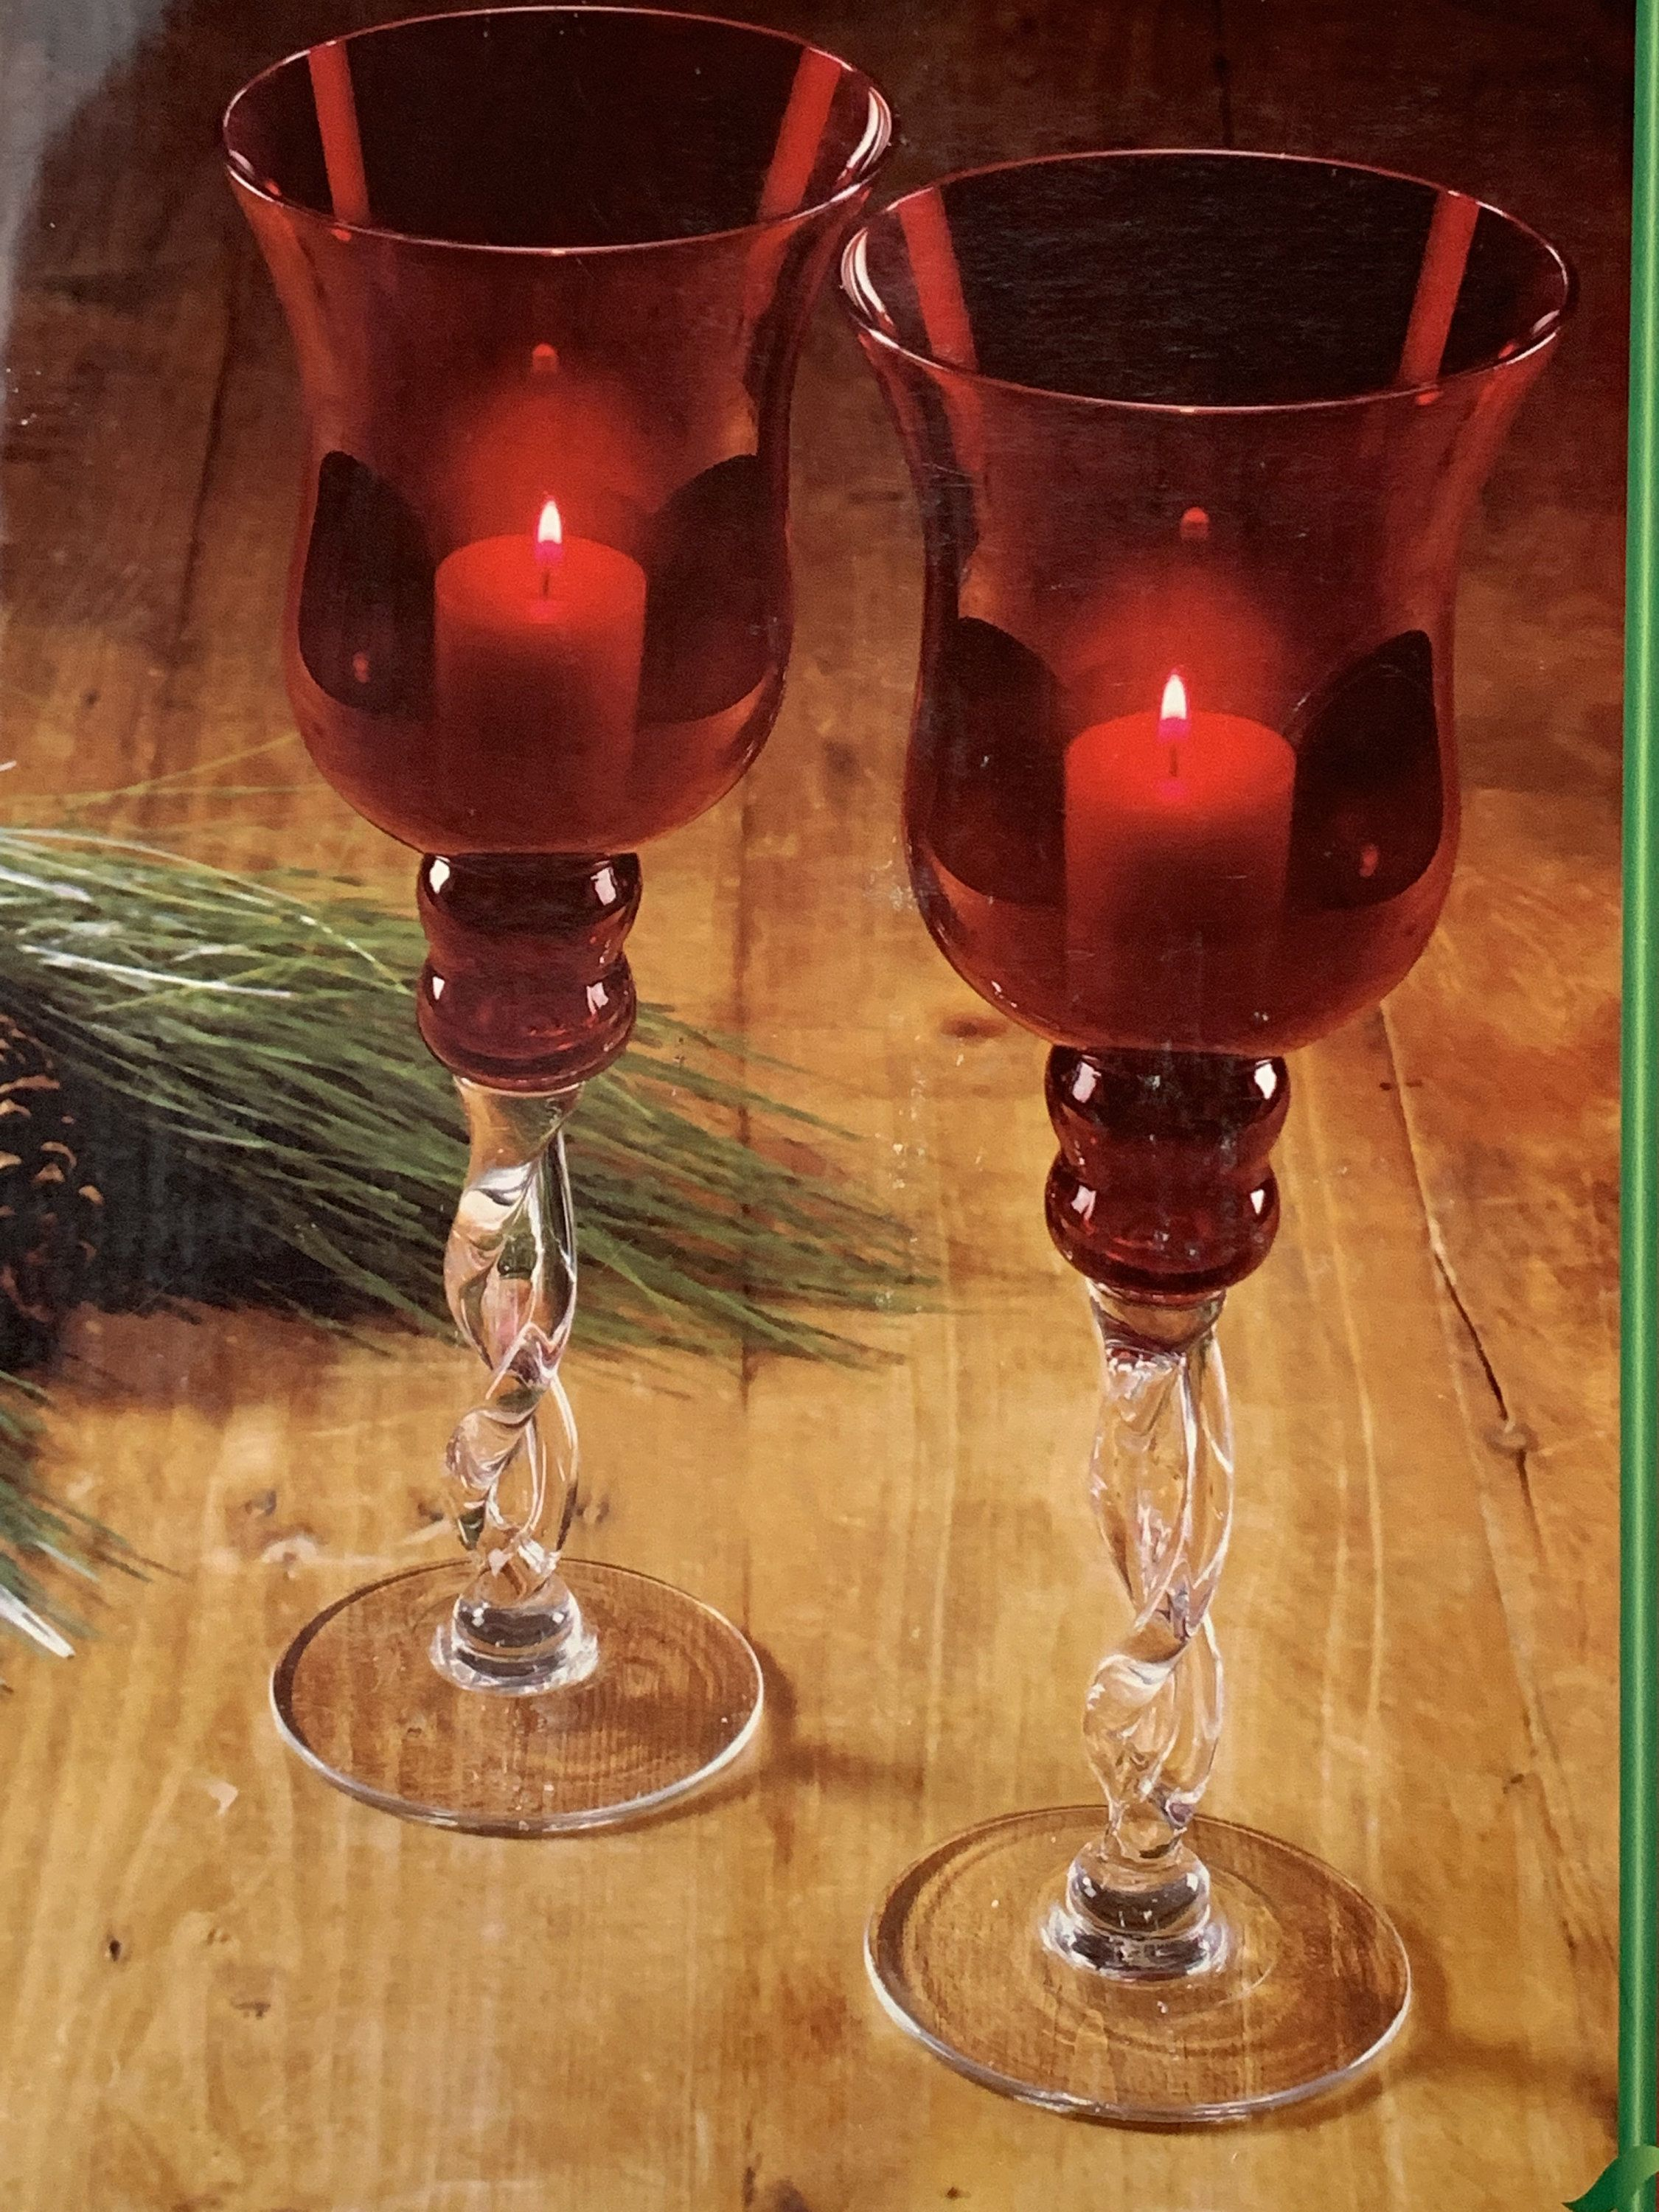 Vintage Red Glass Candlesticks Set Of Two Candle Holders Transparent Glass Twisted Stem Tall Candlelights Big Ruby Candlesticks In Box In 2020 Glass Candlesticks Candlesticks Candle Holders